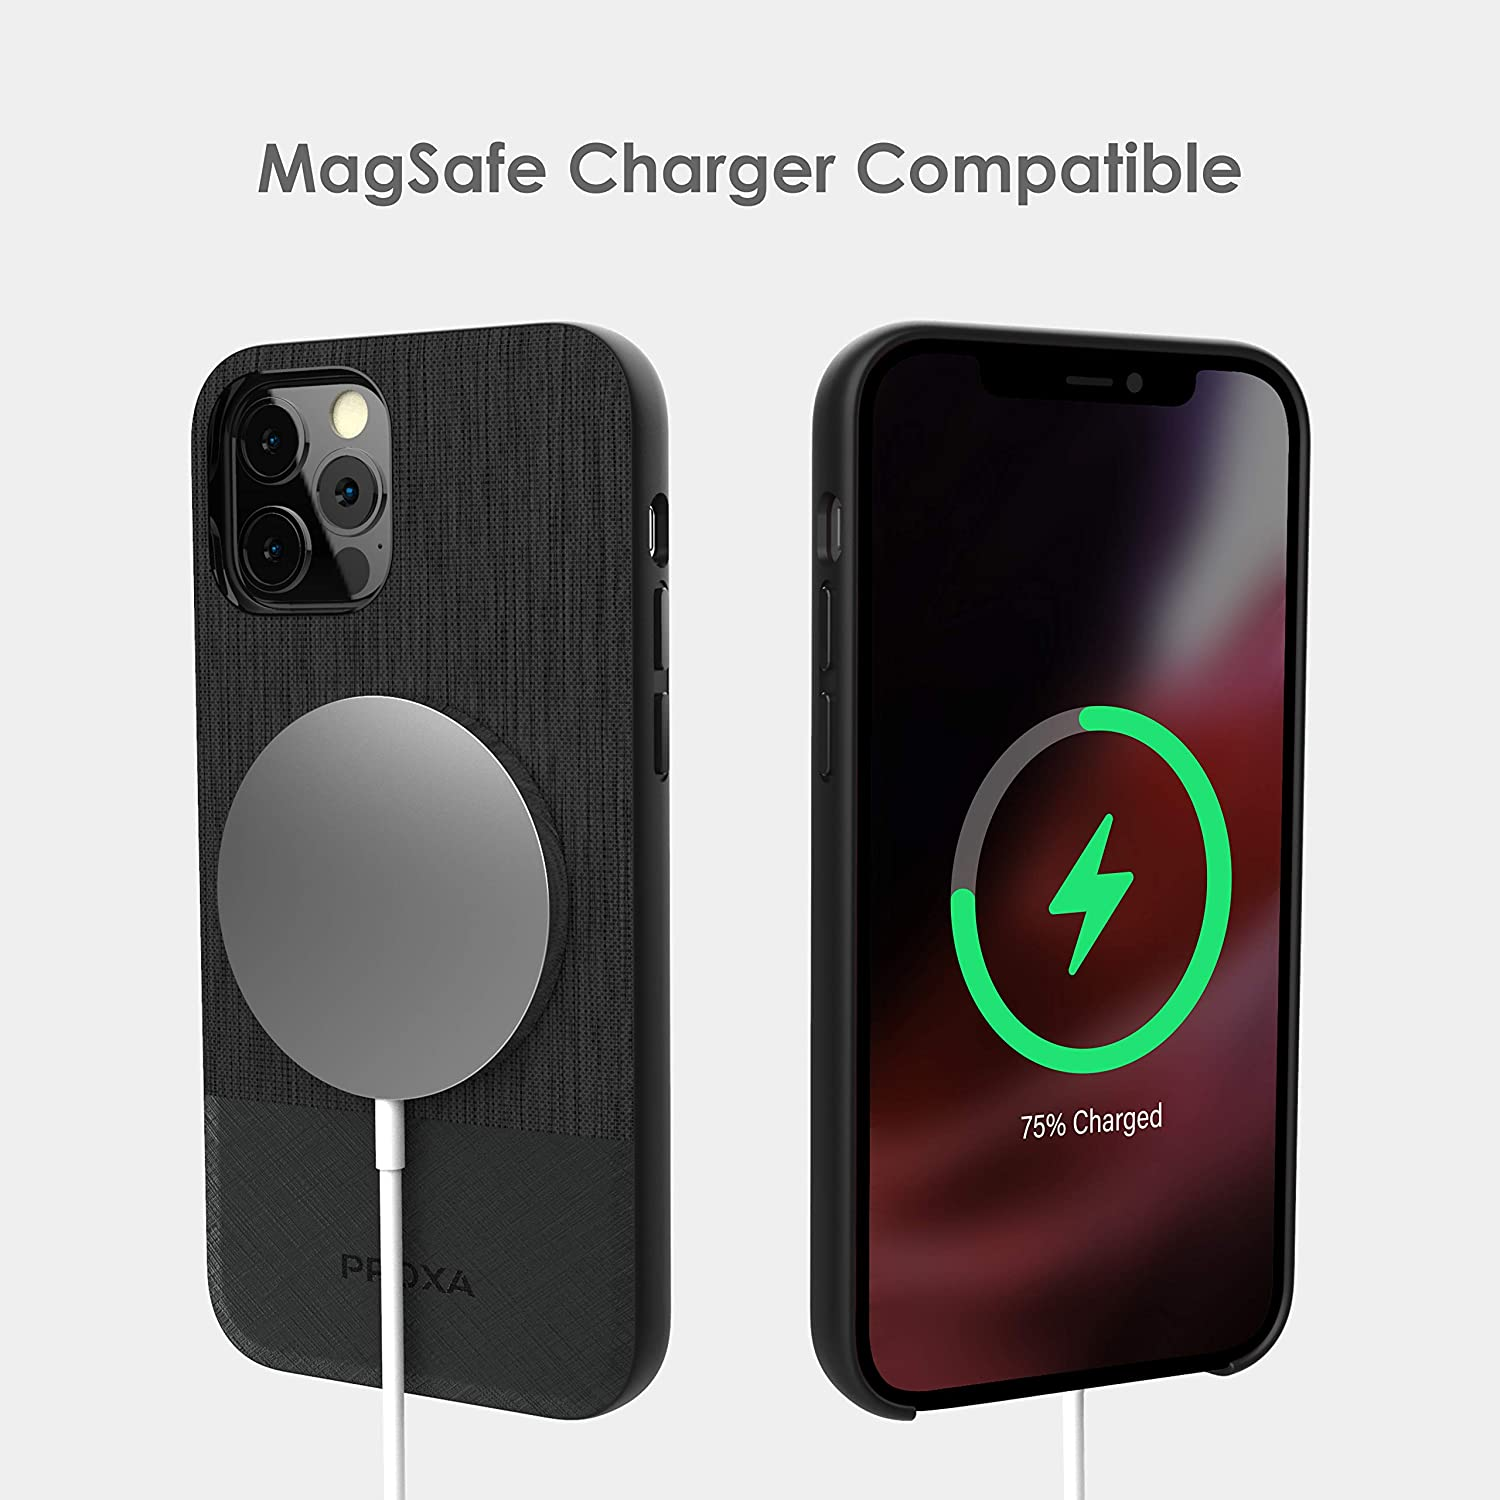 MagSafe Compatible /&Dual Installation Mount/&Dual Port QC 3.0 Car Adapter-Compatible with iPhone 12 Pro Max PROXA Magnetic Wireless Car Charger with 6.7 inch Case Designed for iPhone 12 Pro Max